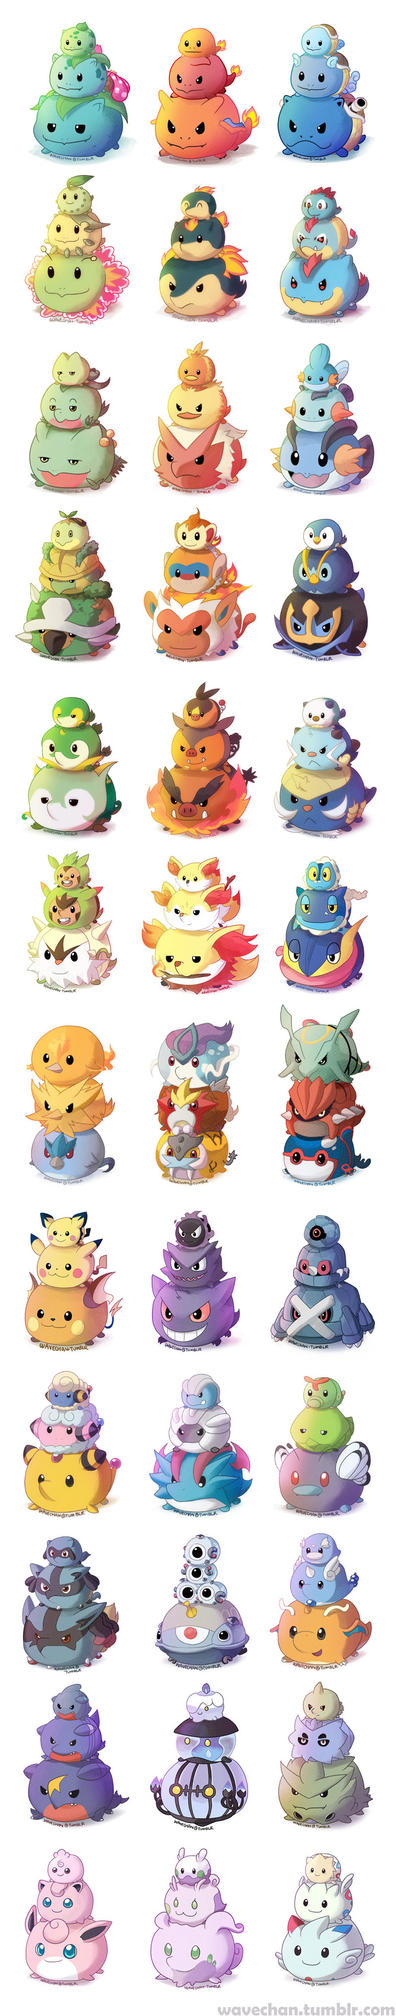 Pokemon TsumTsums! by suzuran